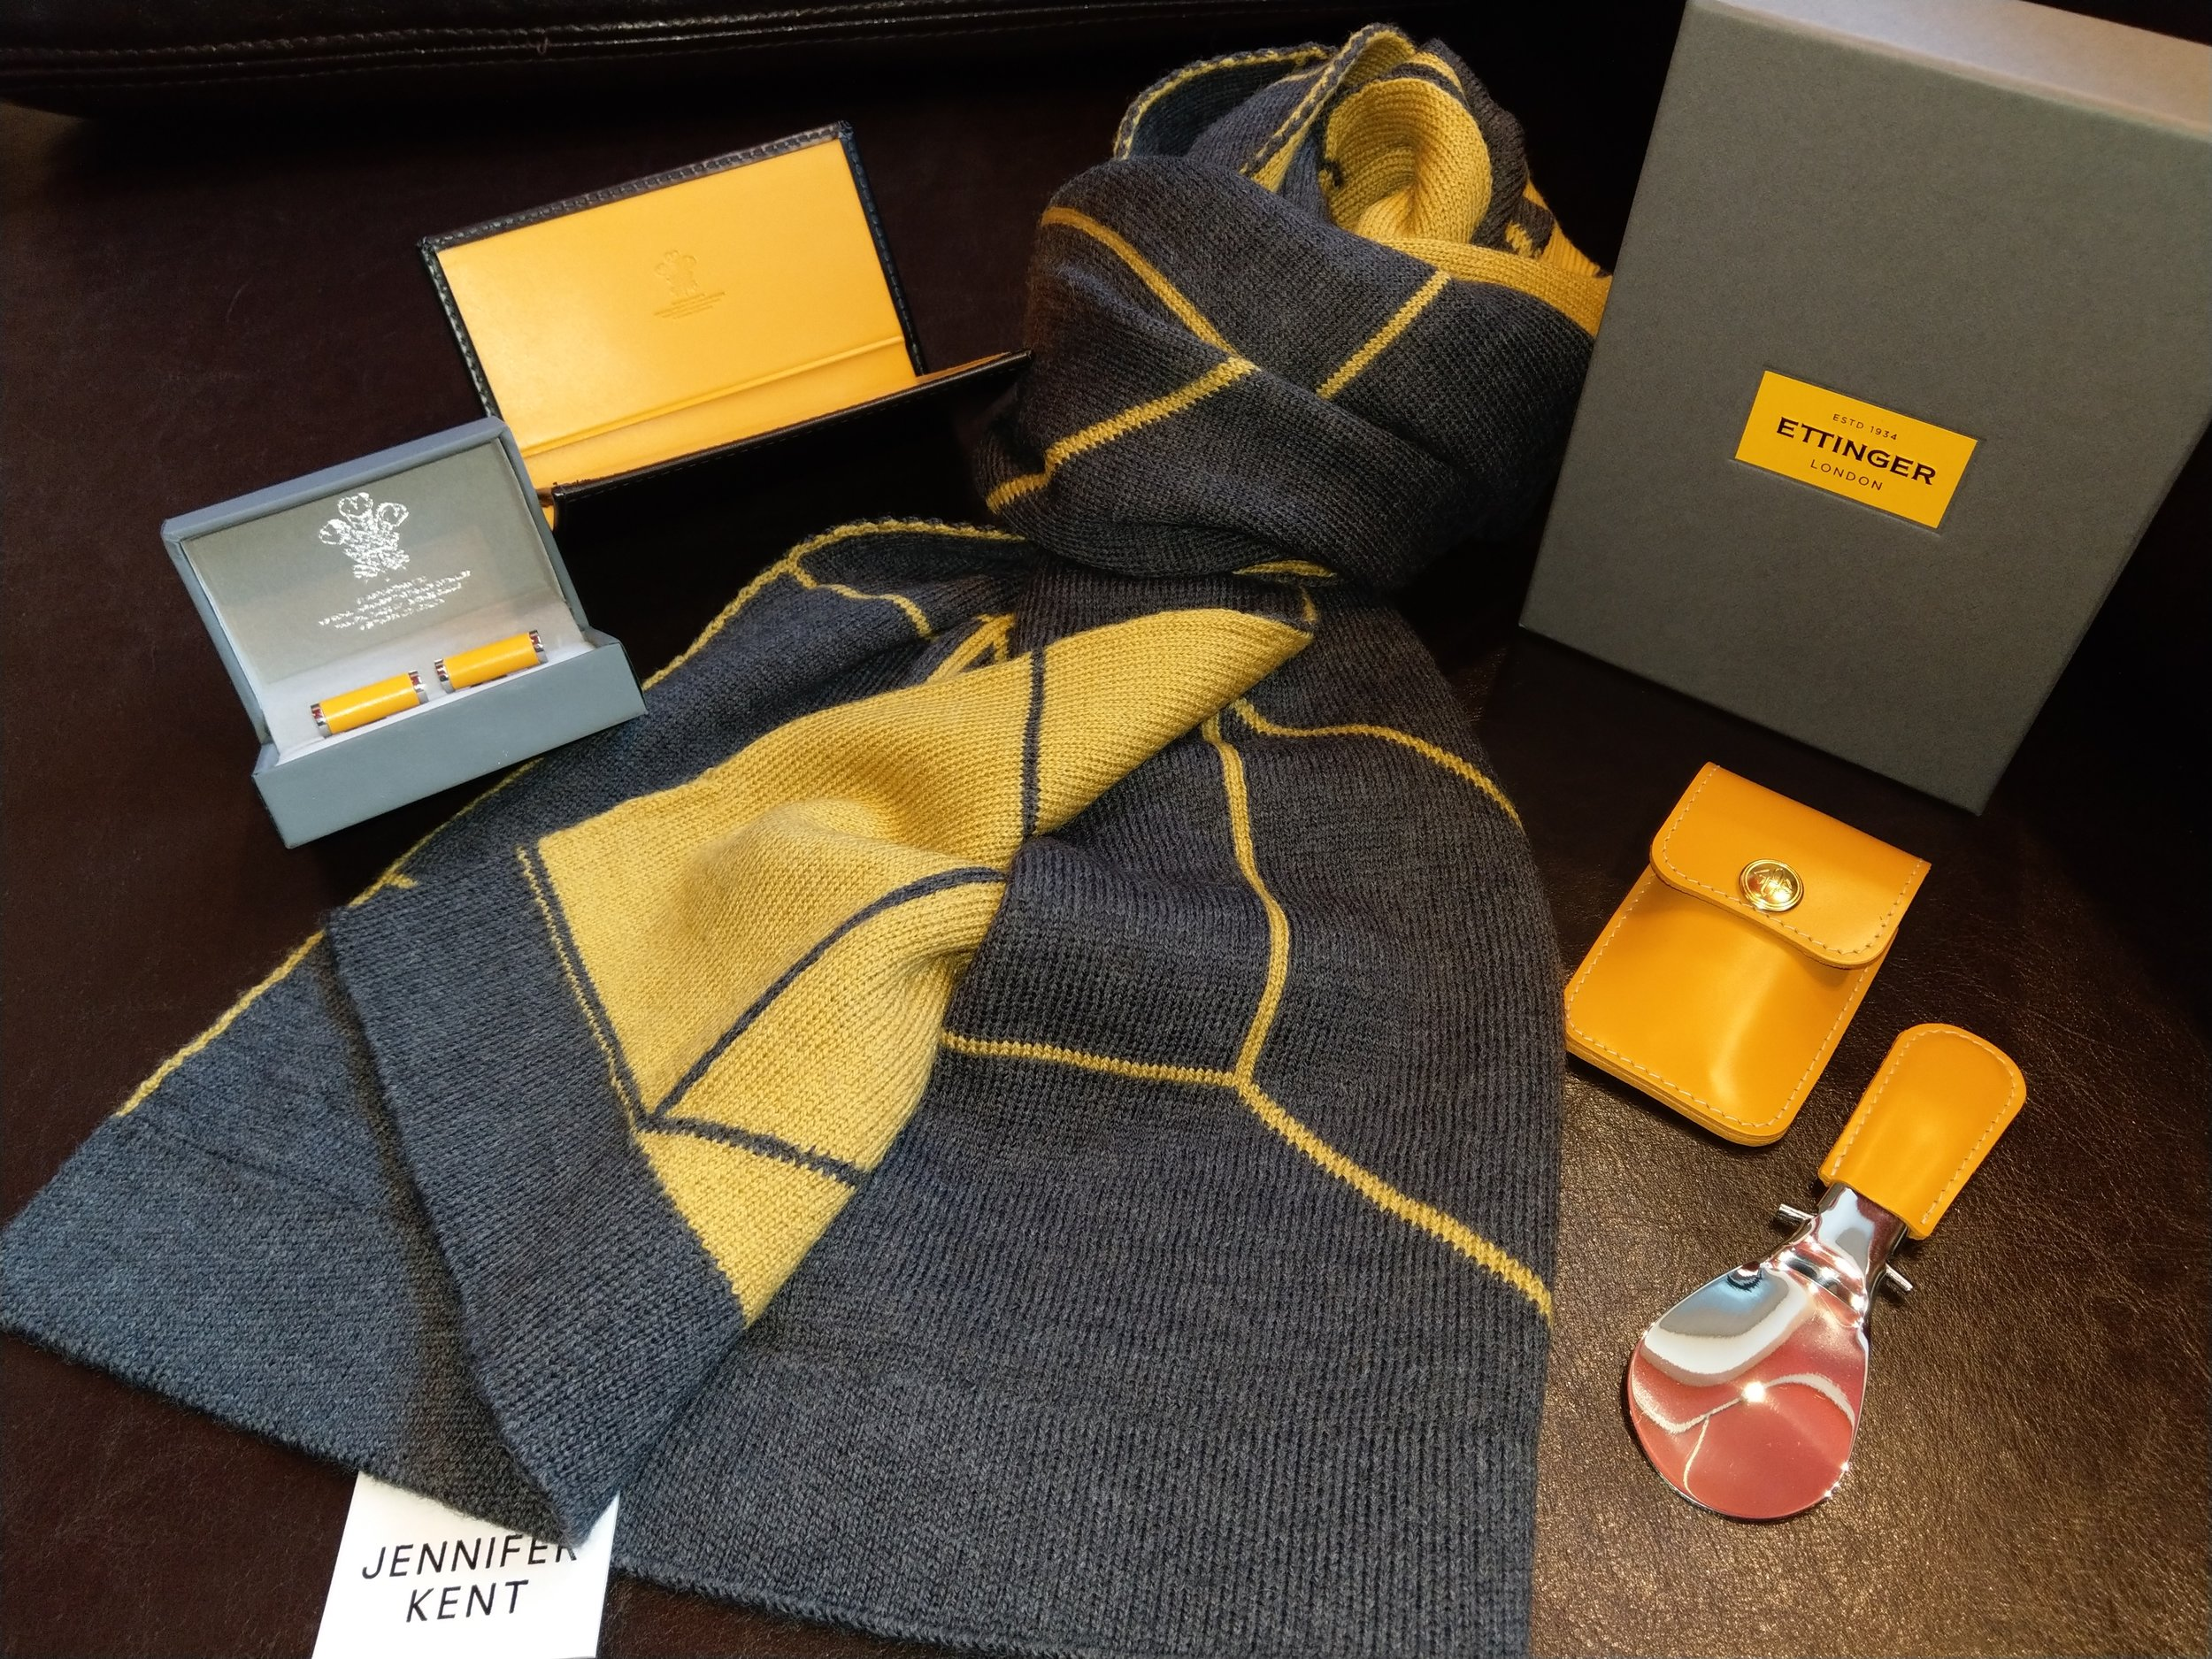 Ettinger & JK Yellow goodies.jpg